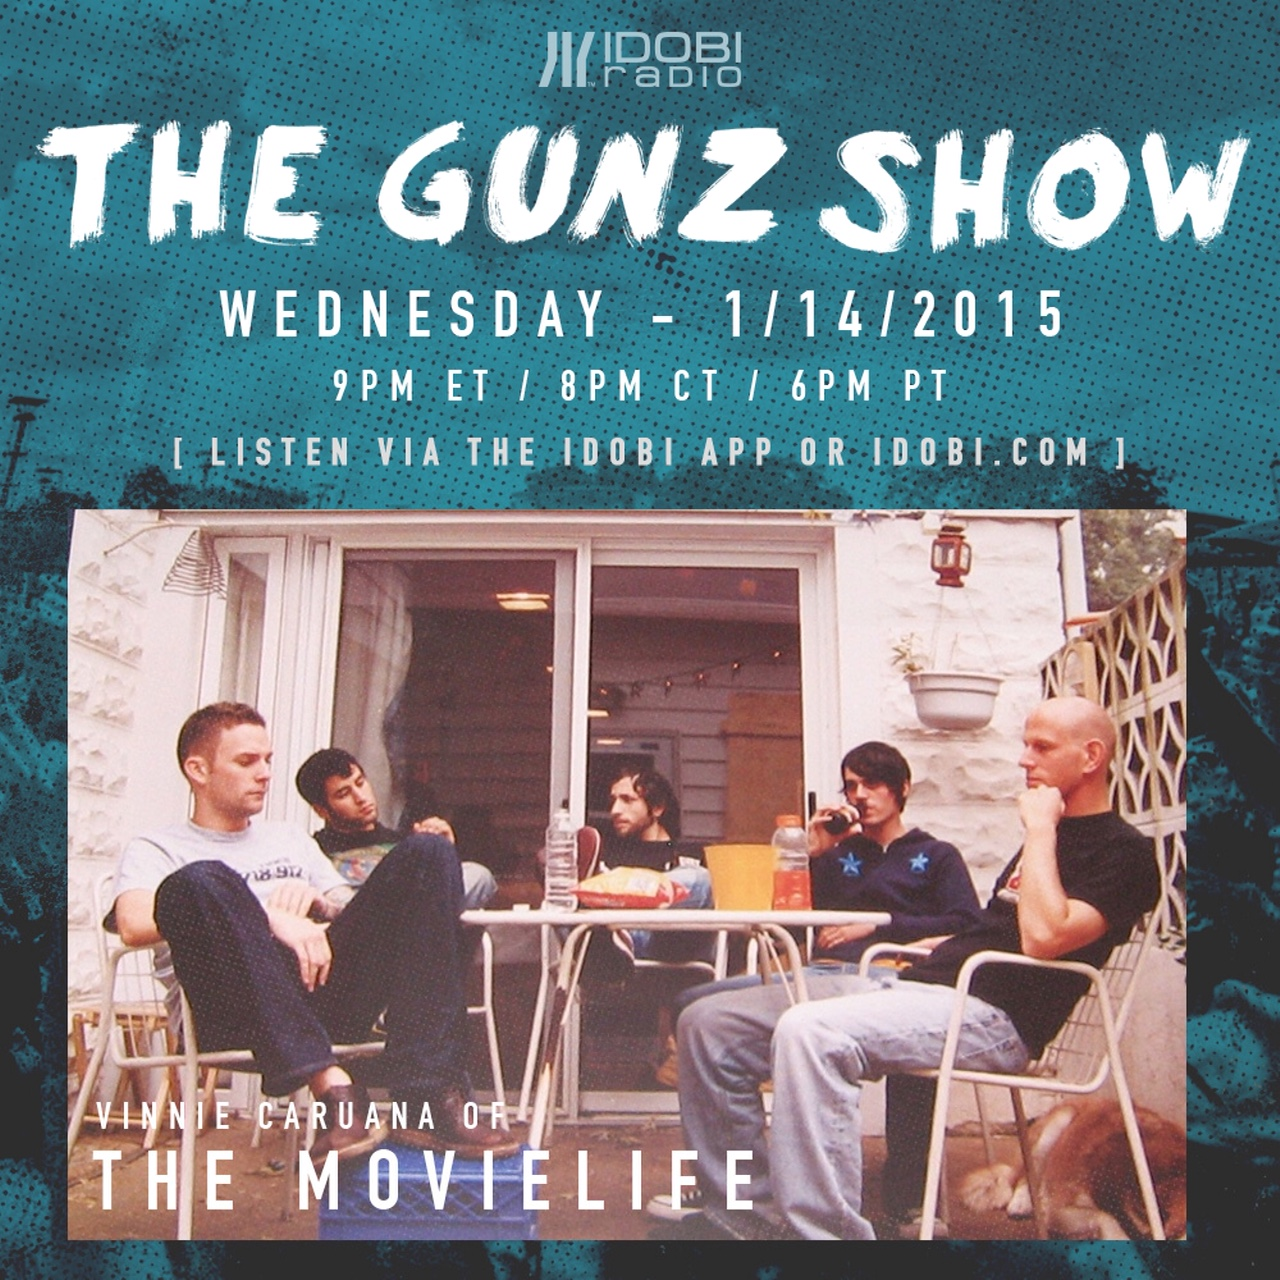 The Gunz Show - January 14th, 2015